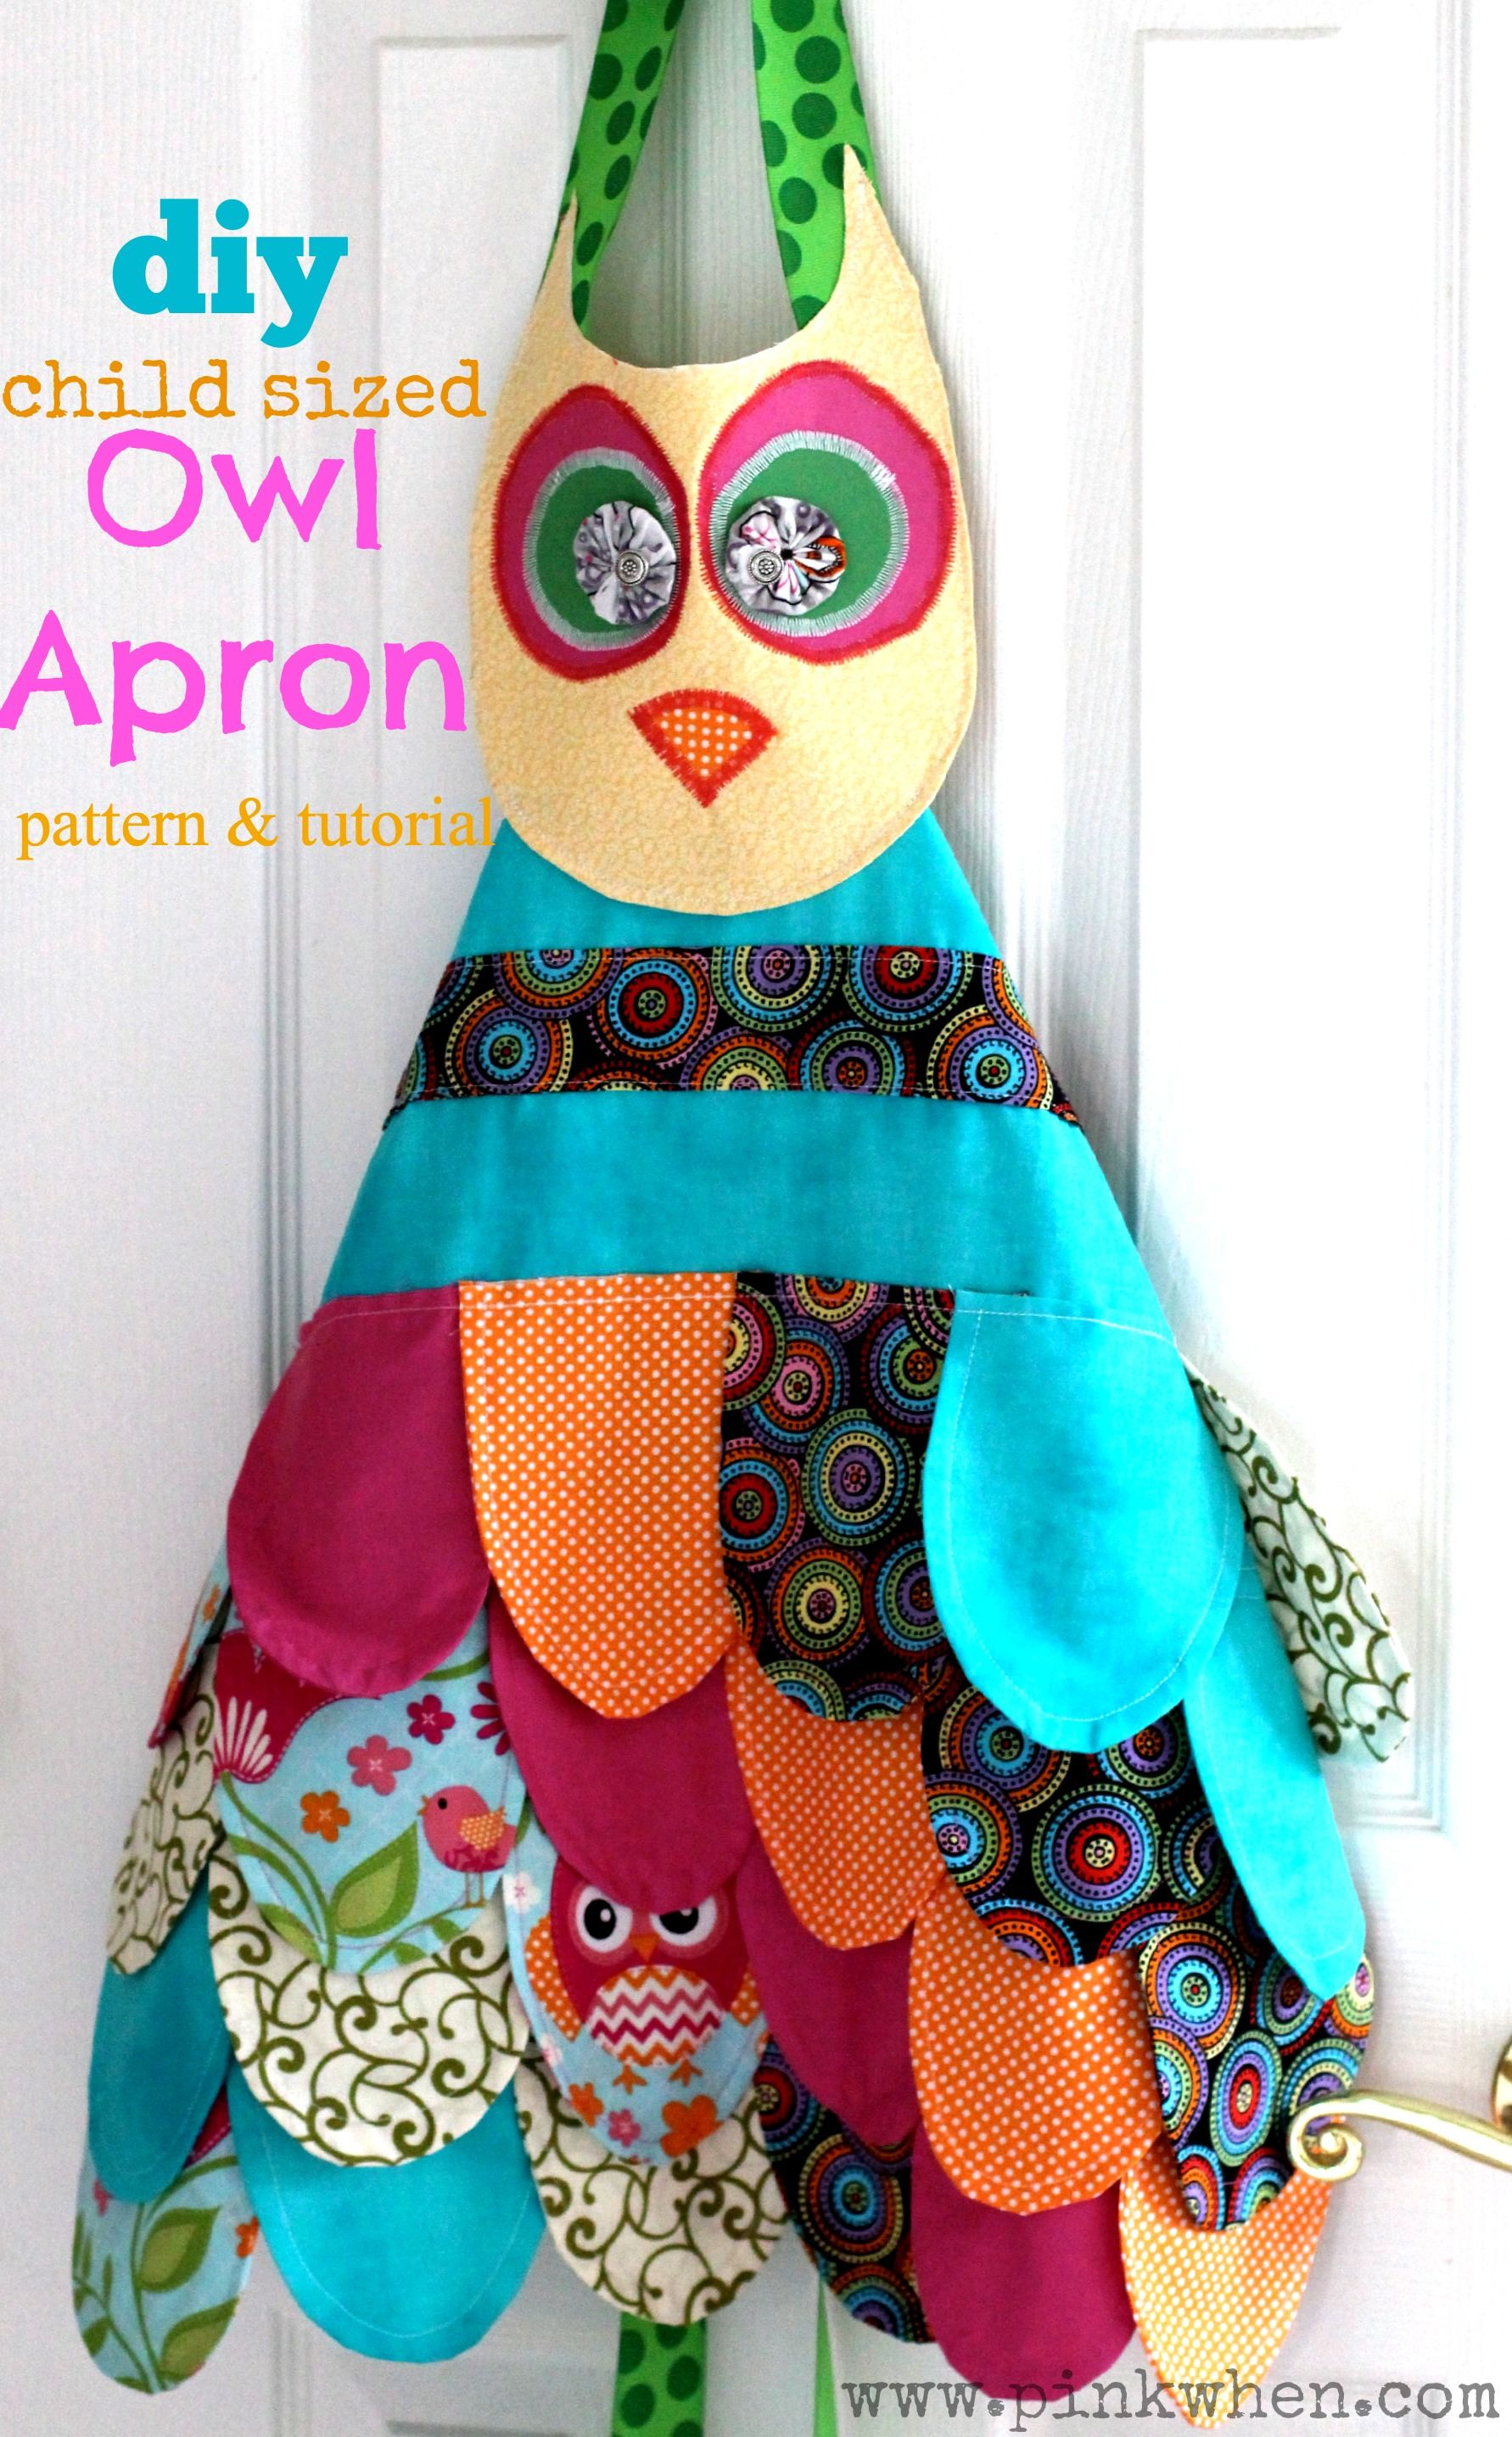 My Little Owl Apron & Confession | Apron, Free pattern and Owl